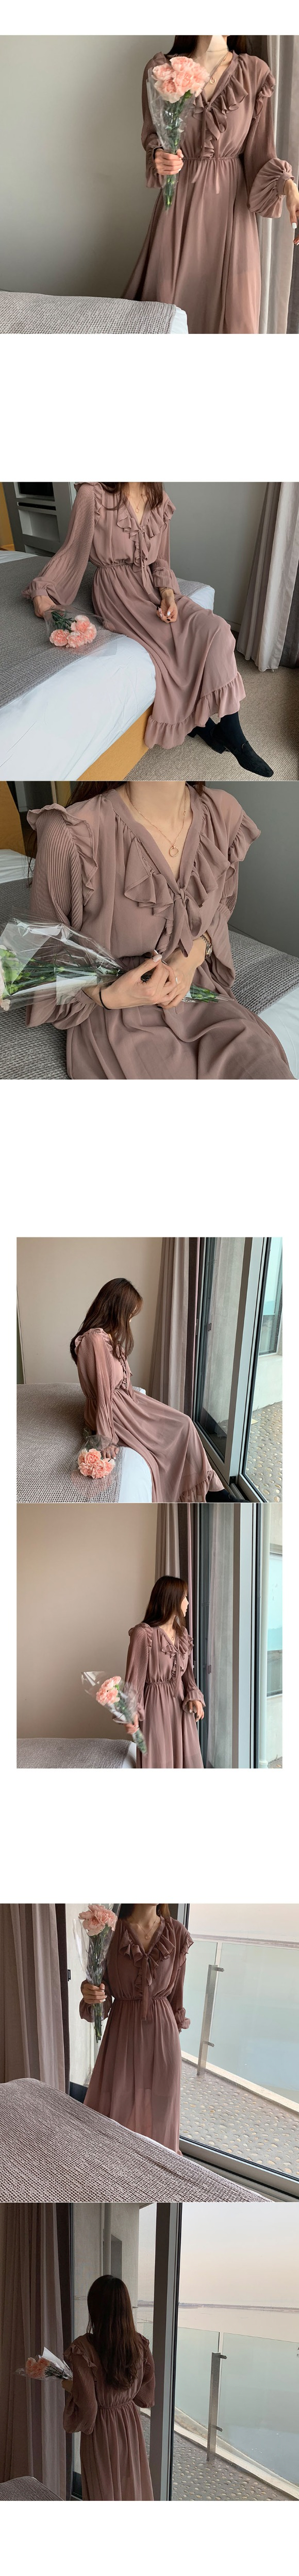 H6dd53a4bf37a4d149f6157accaa50d7c8 - Autumn O-Neck Long Sleeves Chiffon Ruffles Maxi Dress